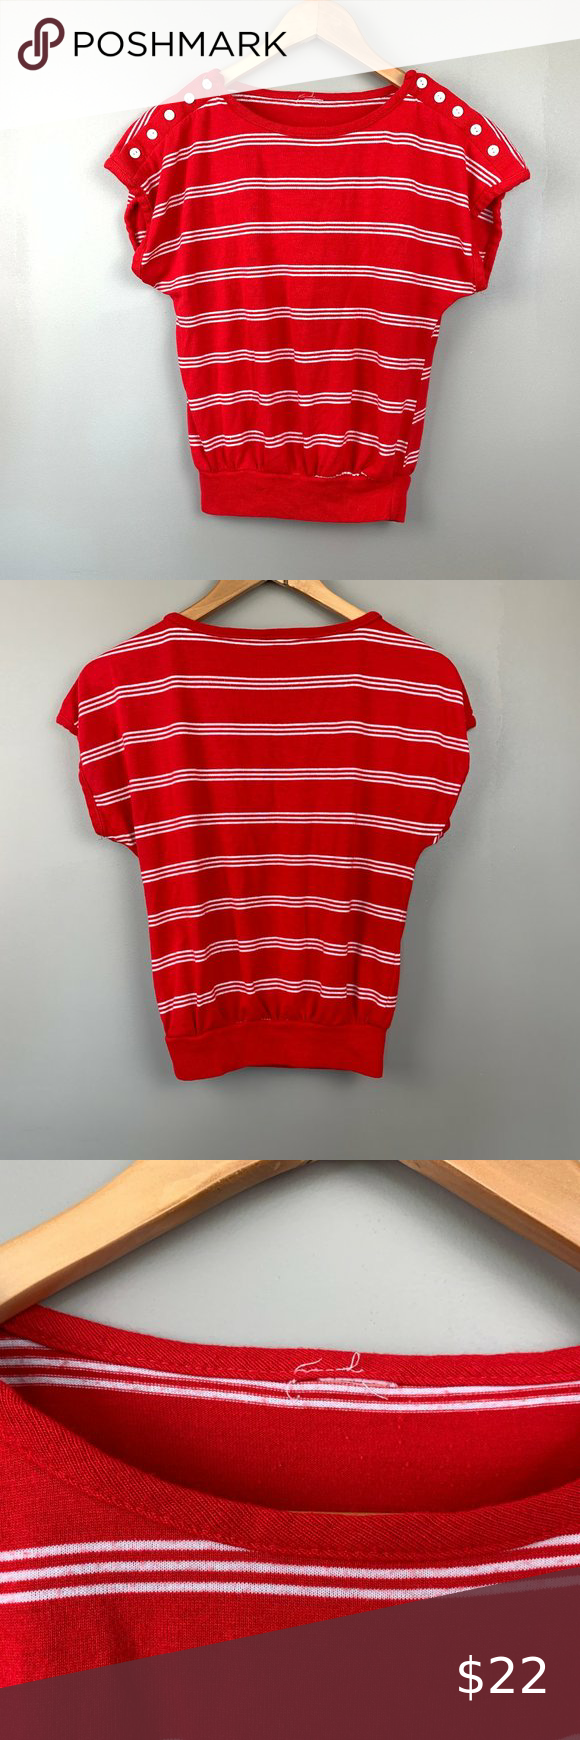 Vintage Red Stripe Sleeveless Sweater Small Top Red White Striped Top White Stripes Top Sleeveless Sweater